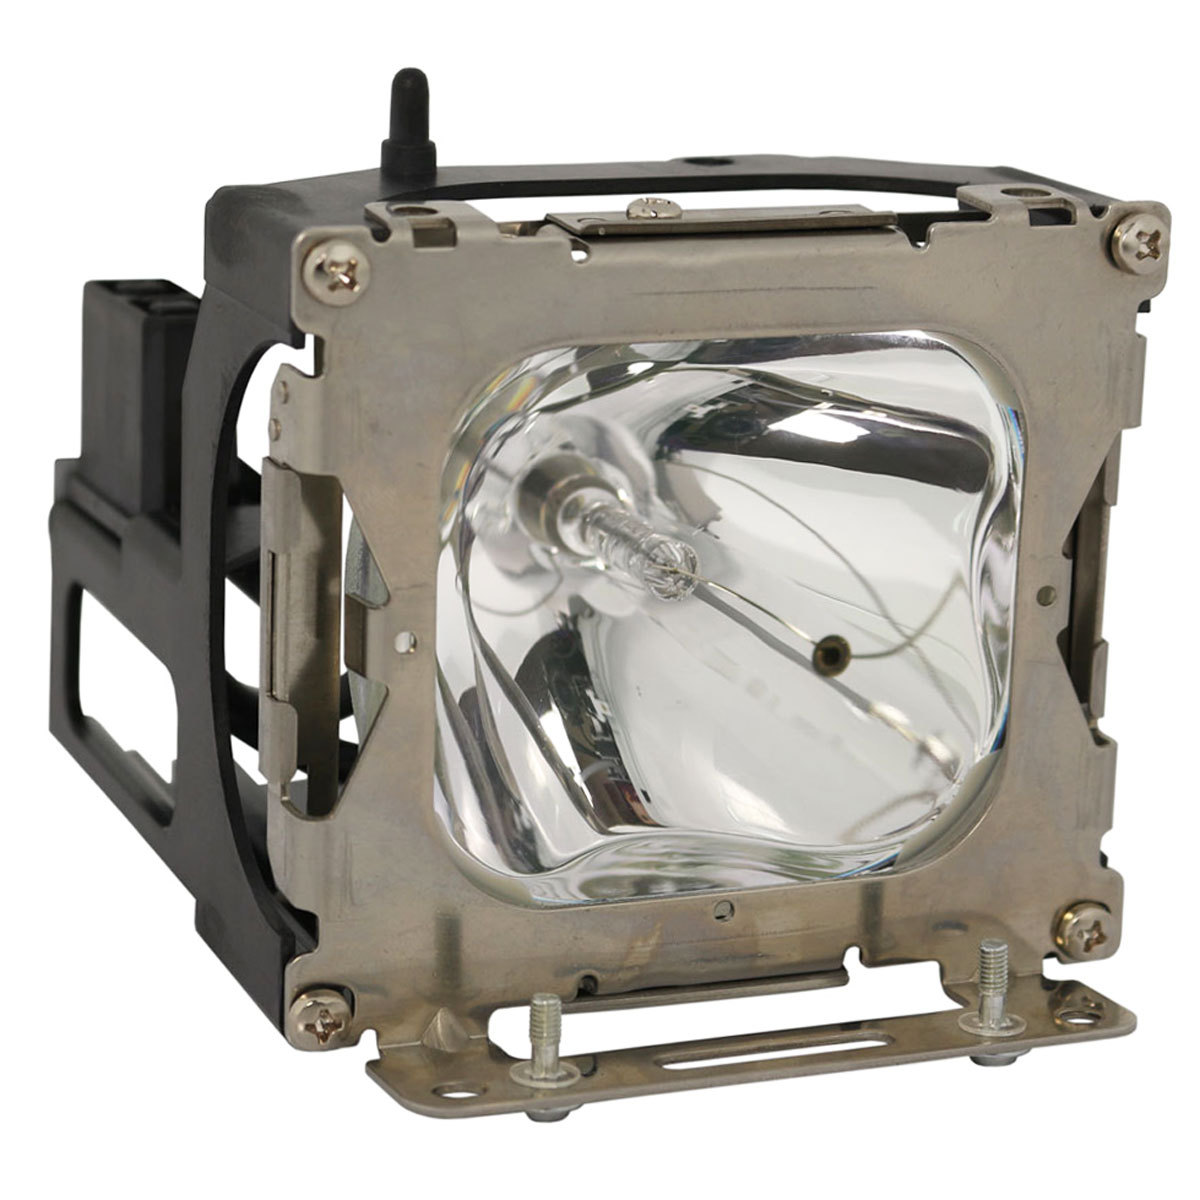 Primary image for Hitachi DT00201 Osram Projector Lamp Module